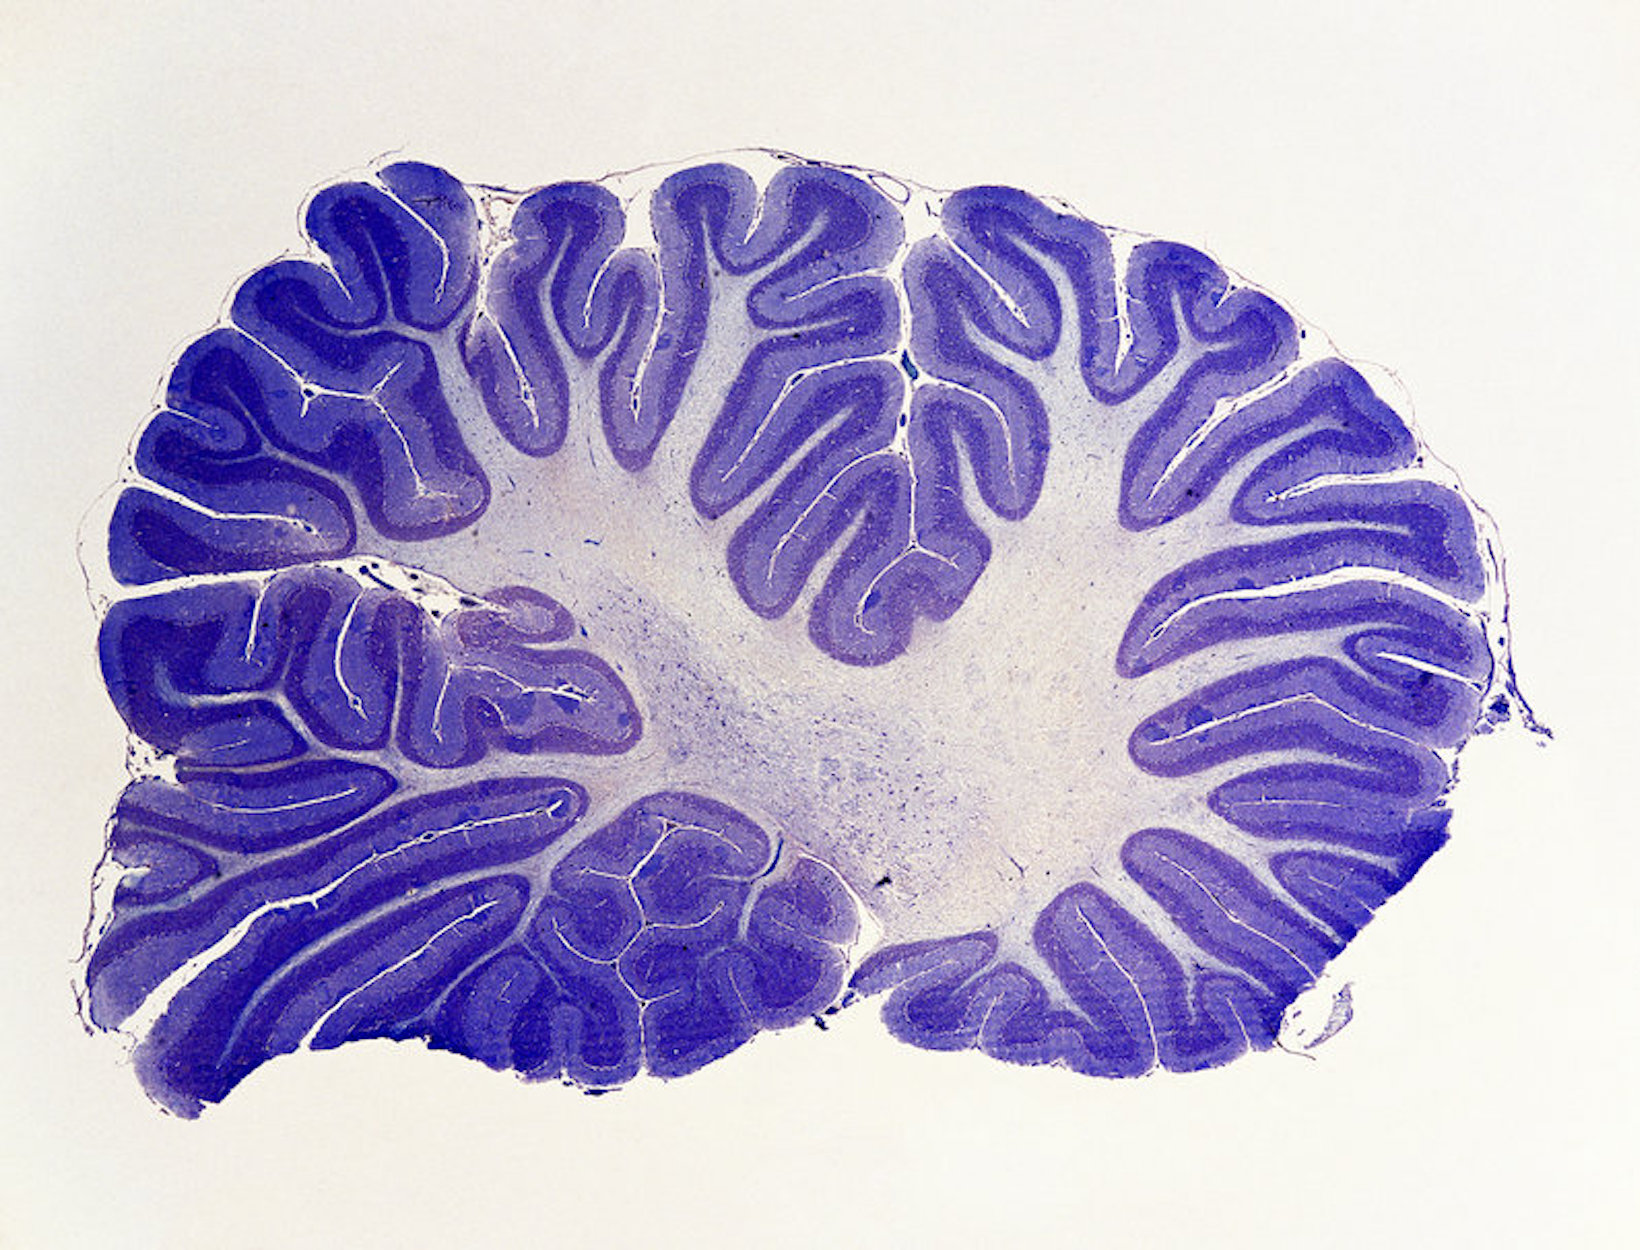 The Underestimated Cerebellum Gains New Respect from Brain Scientists